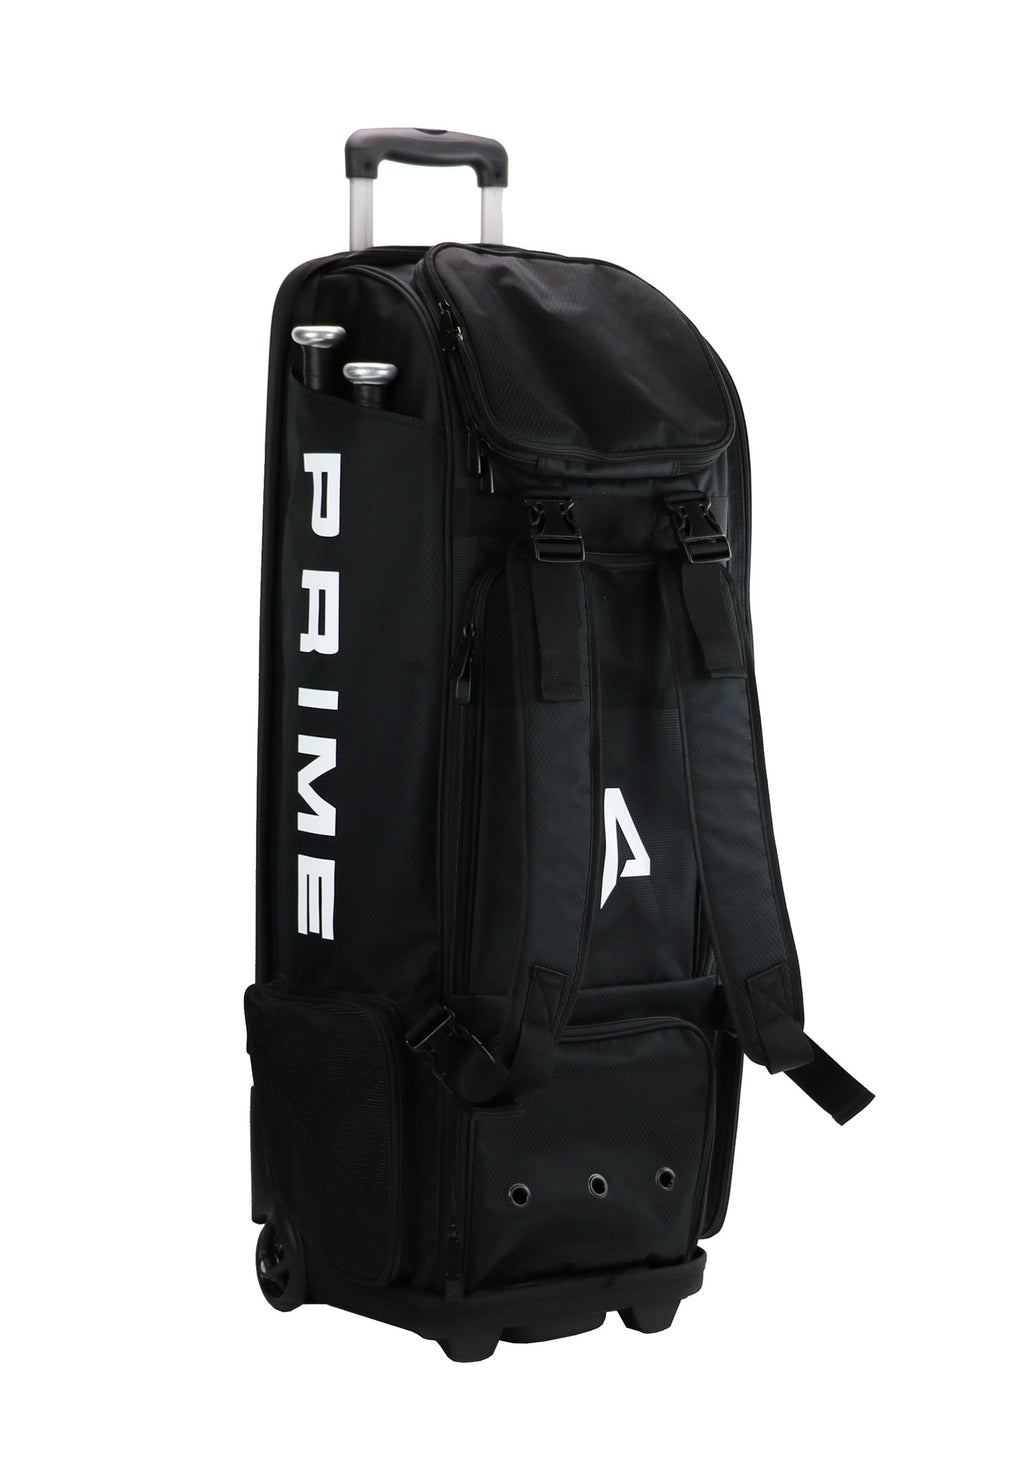 Alpha Prime Roller Bag - Black